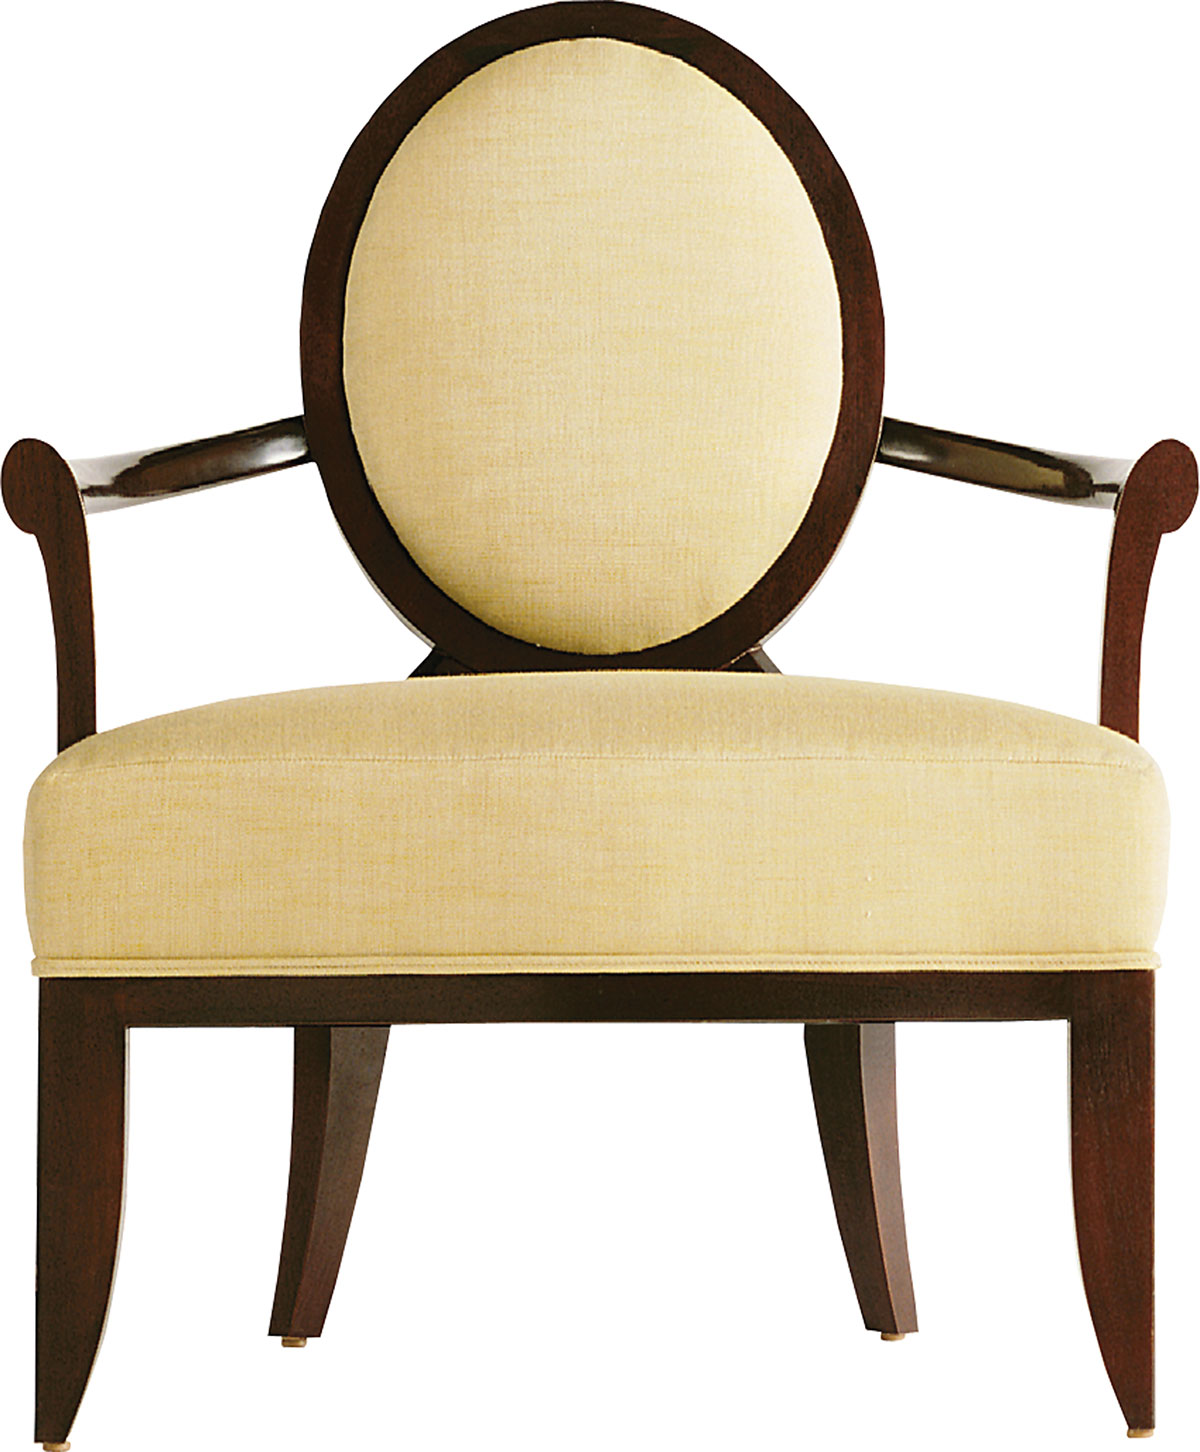 OVAL X-BACK CHAIR